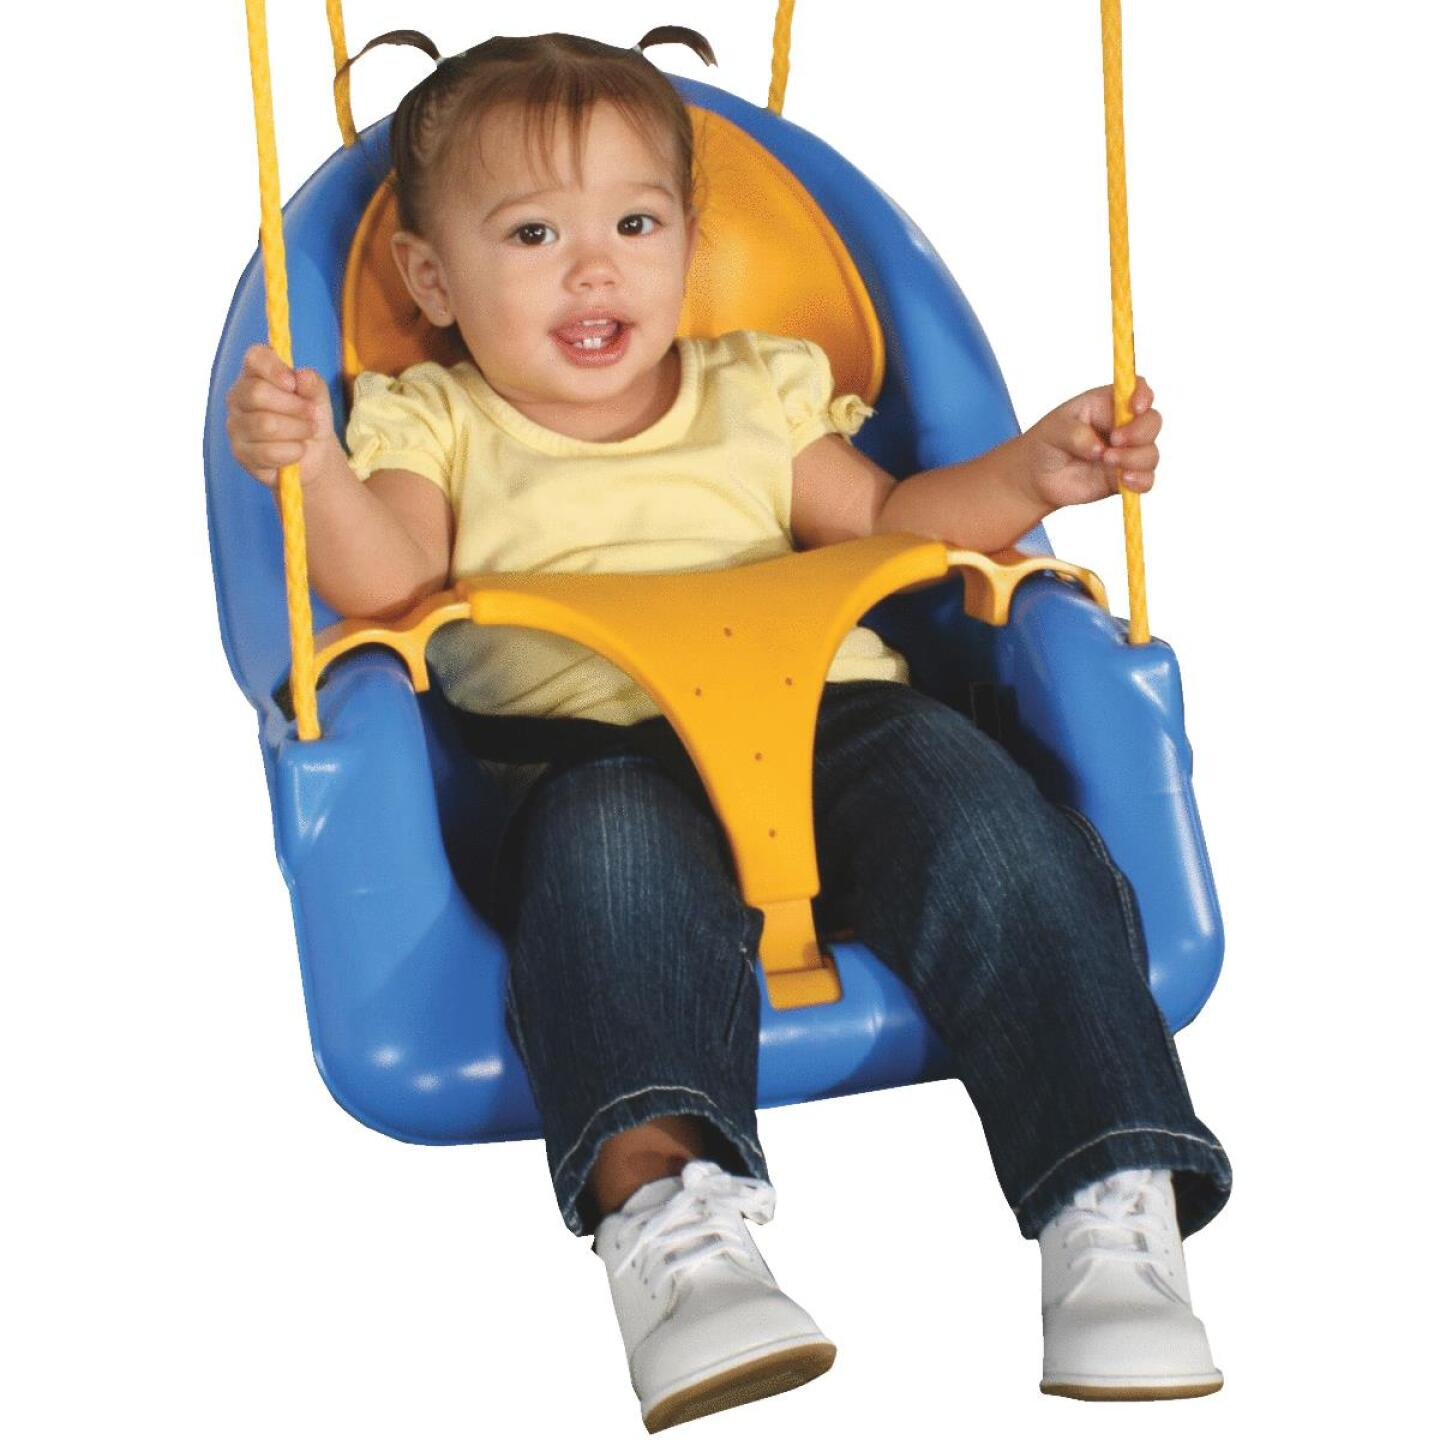 Swing N Slide Comfy-N-Secure Toddler Blue & Yellow Swing Image 1